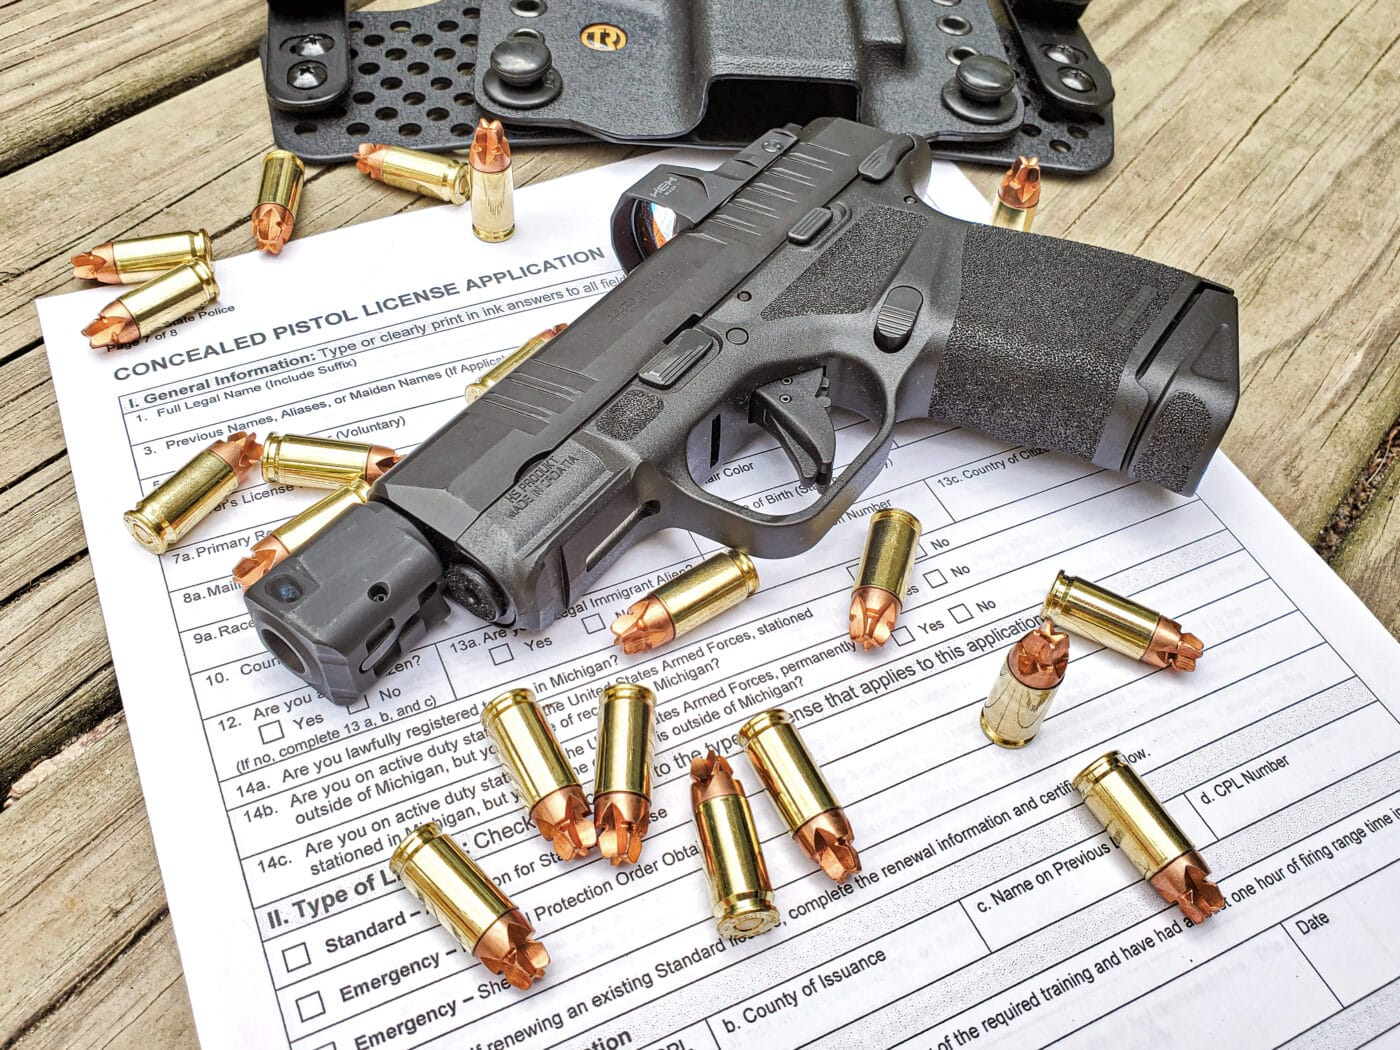 CPL application with ammo and gun on top